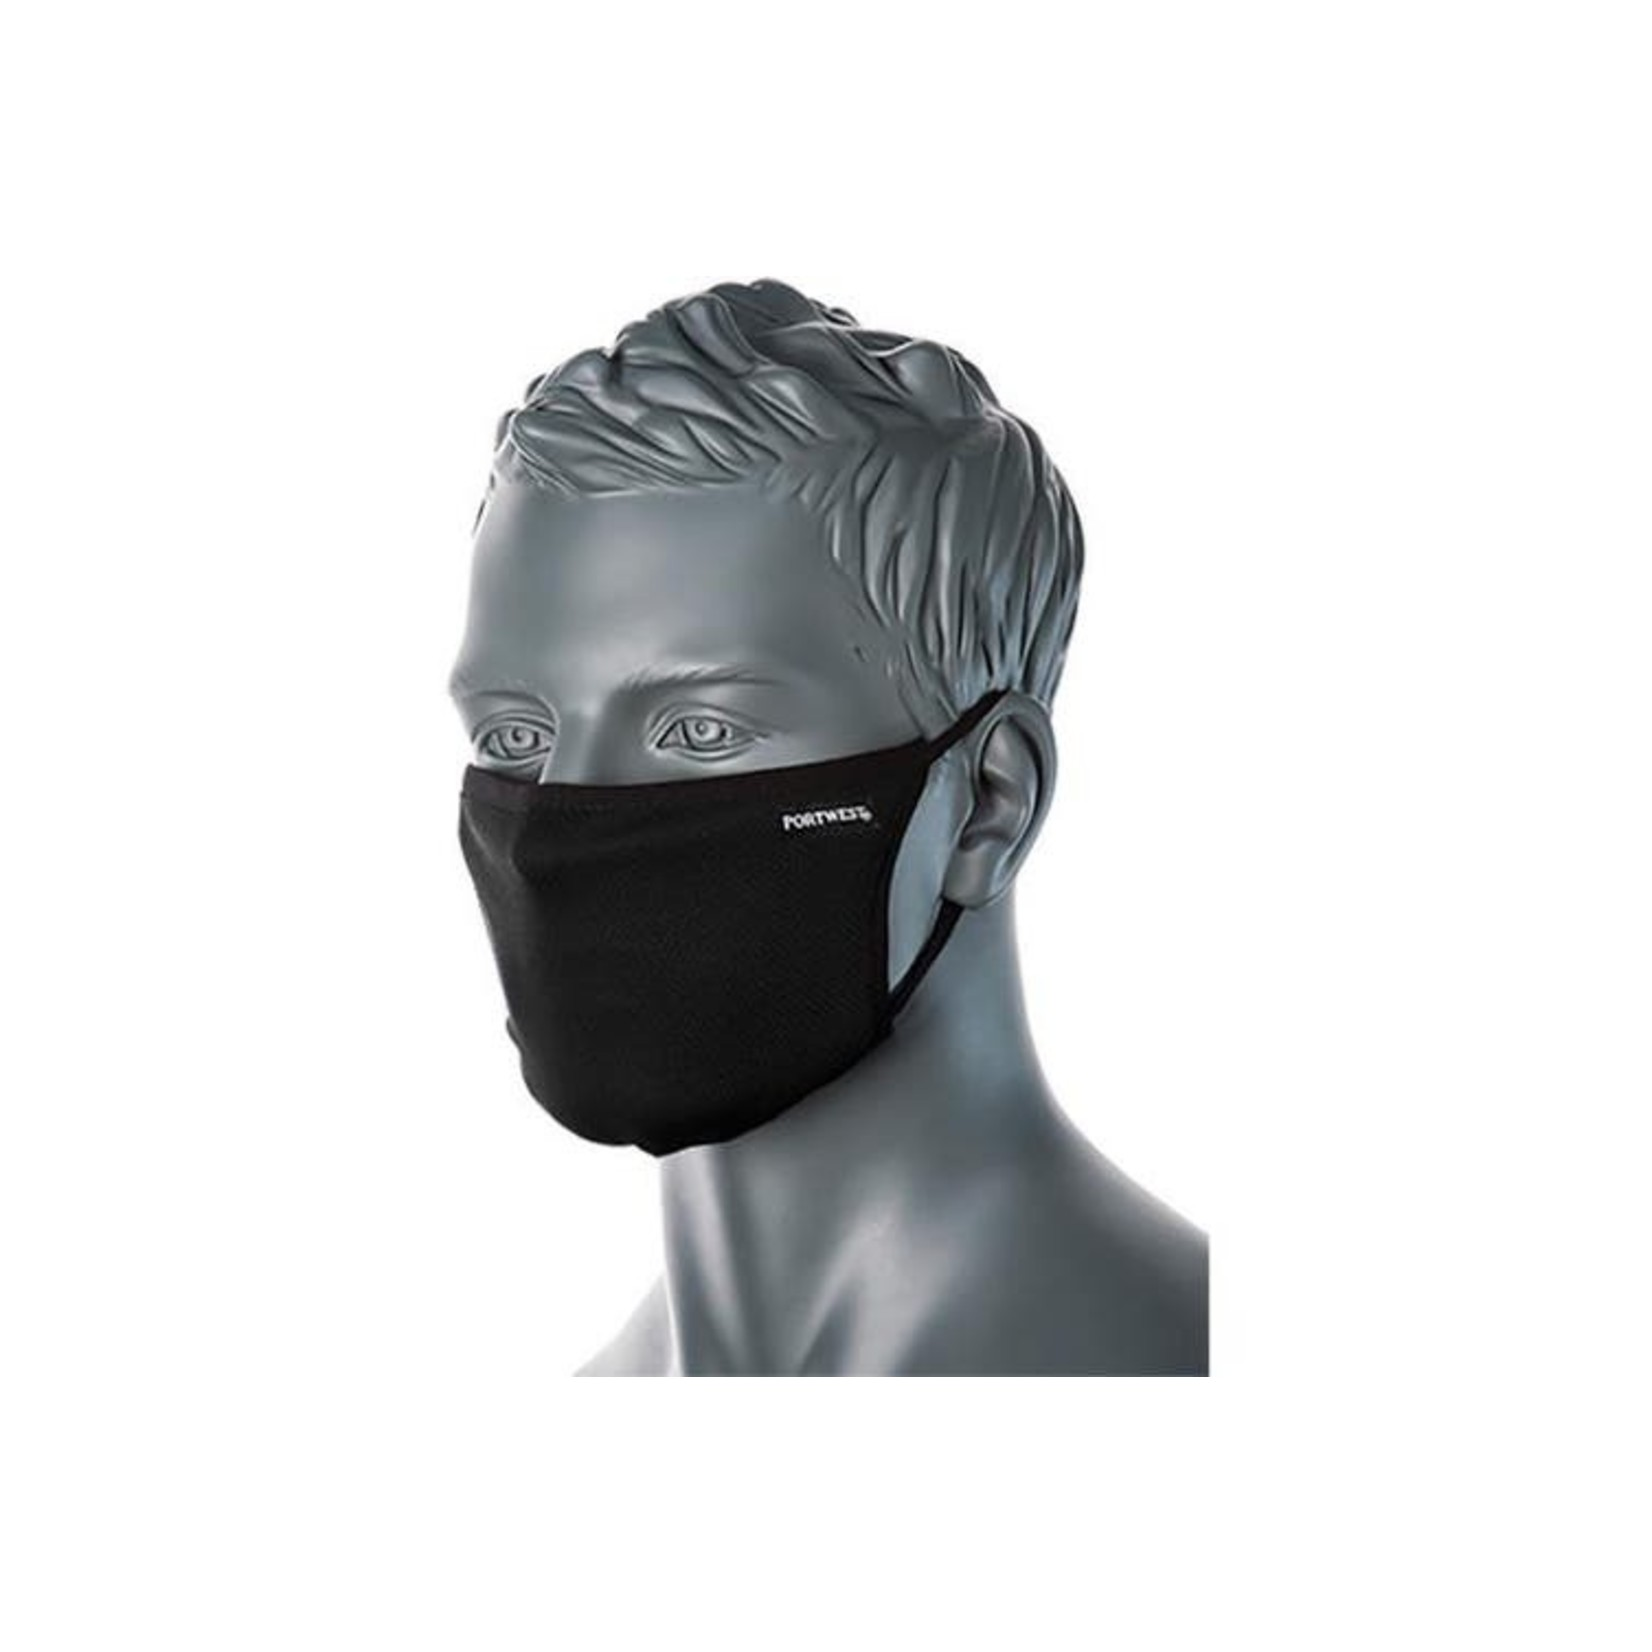 Portwest PortWest 3 Ply Reusable Face Mask